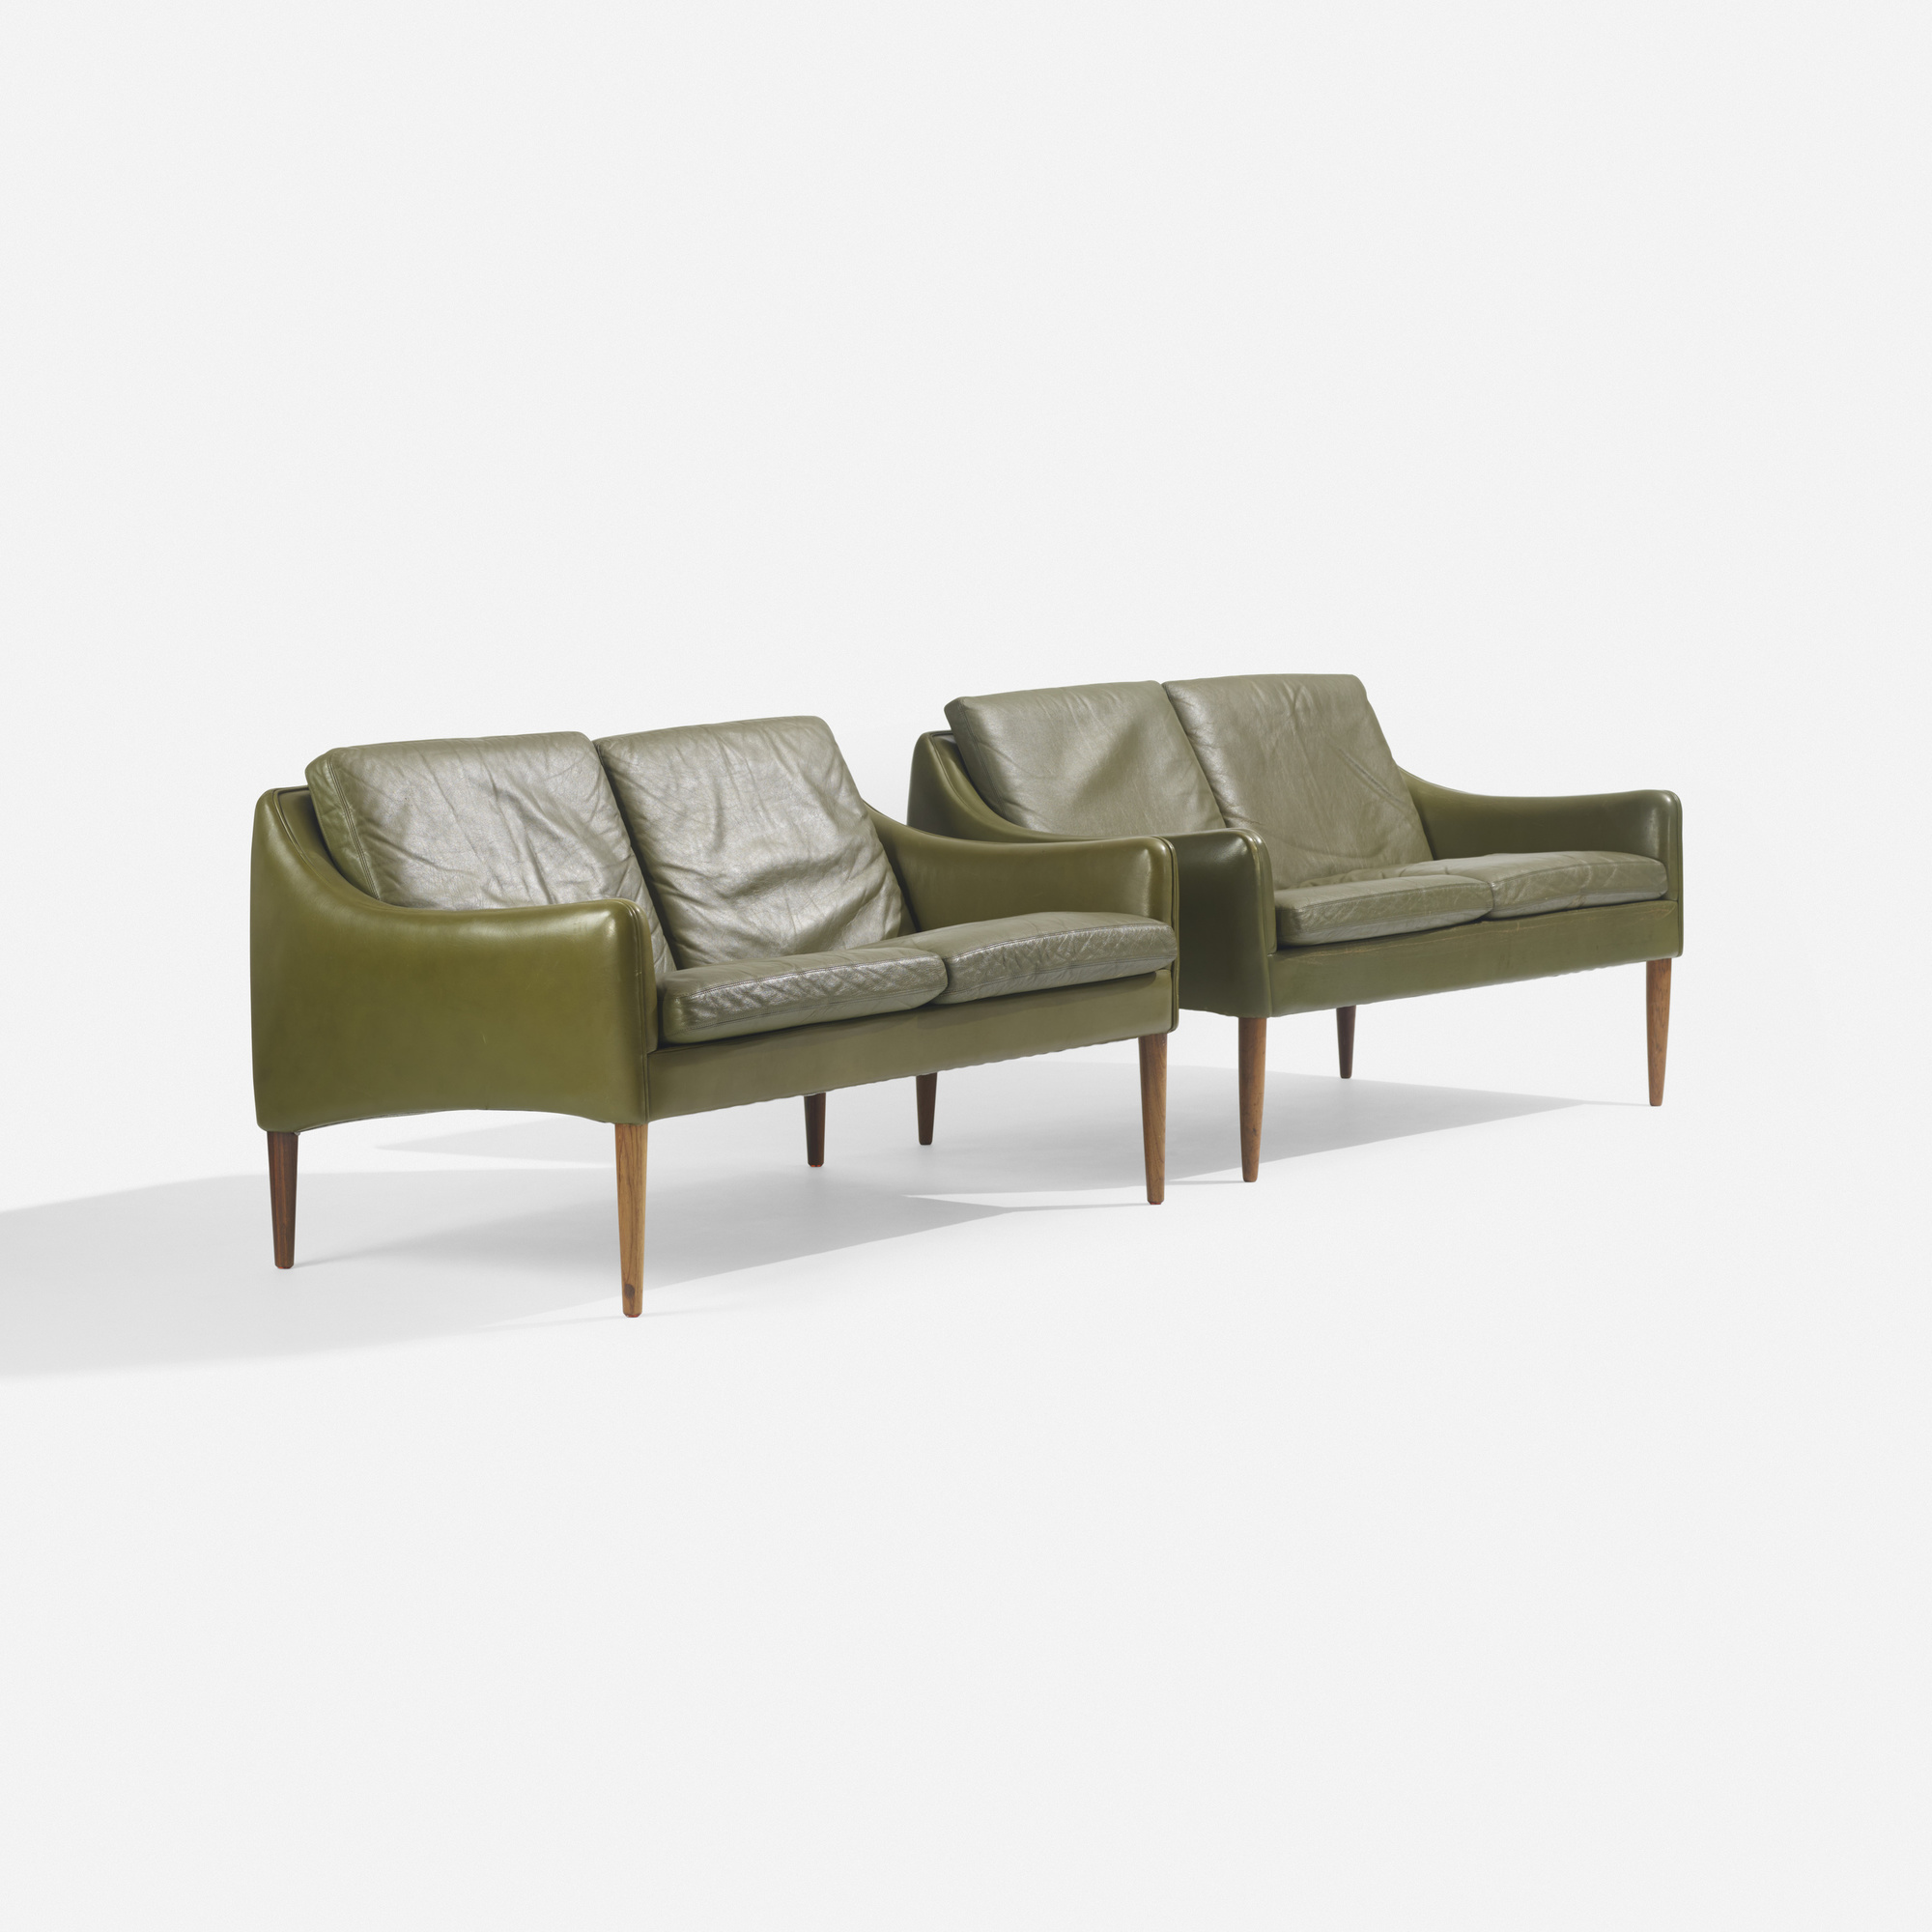 186: Hans Olsen / settees model 800/2, pair (1 of 3)